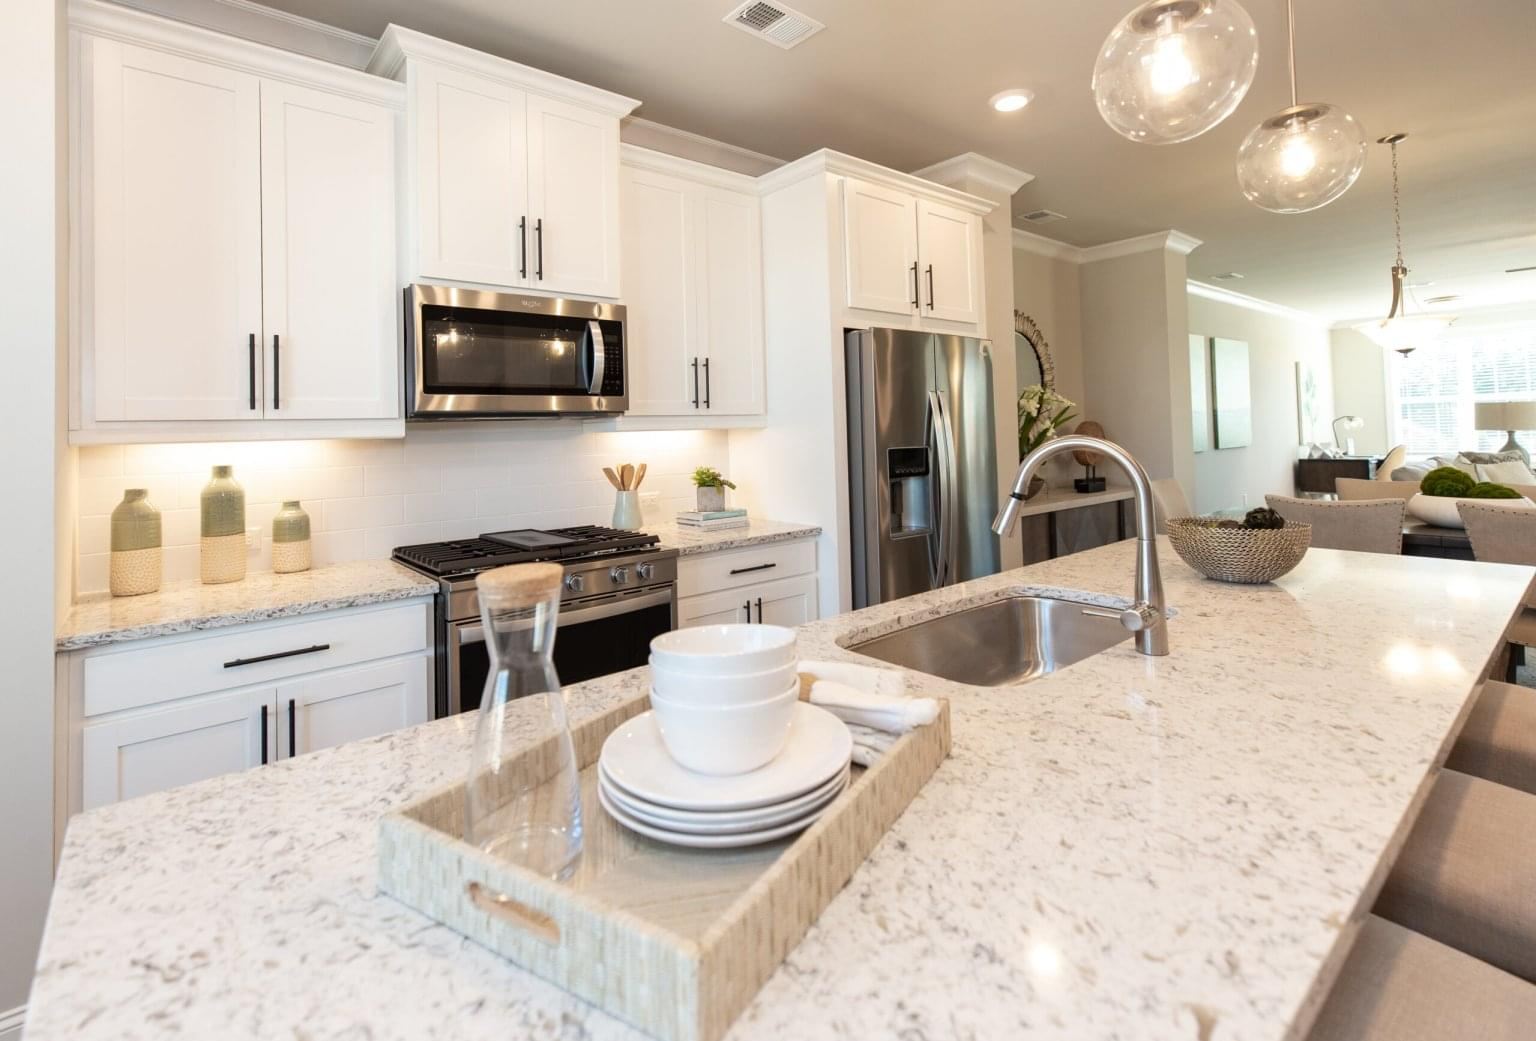 The Providence Group Opens New Decorated Model at Greysolon in Duluth